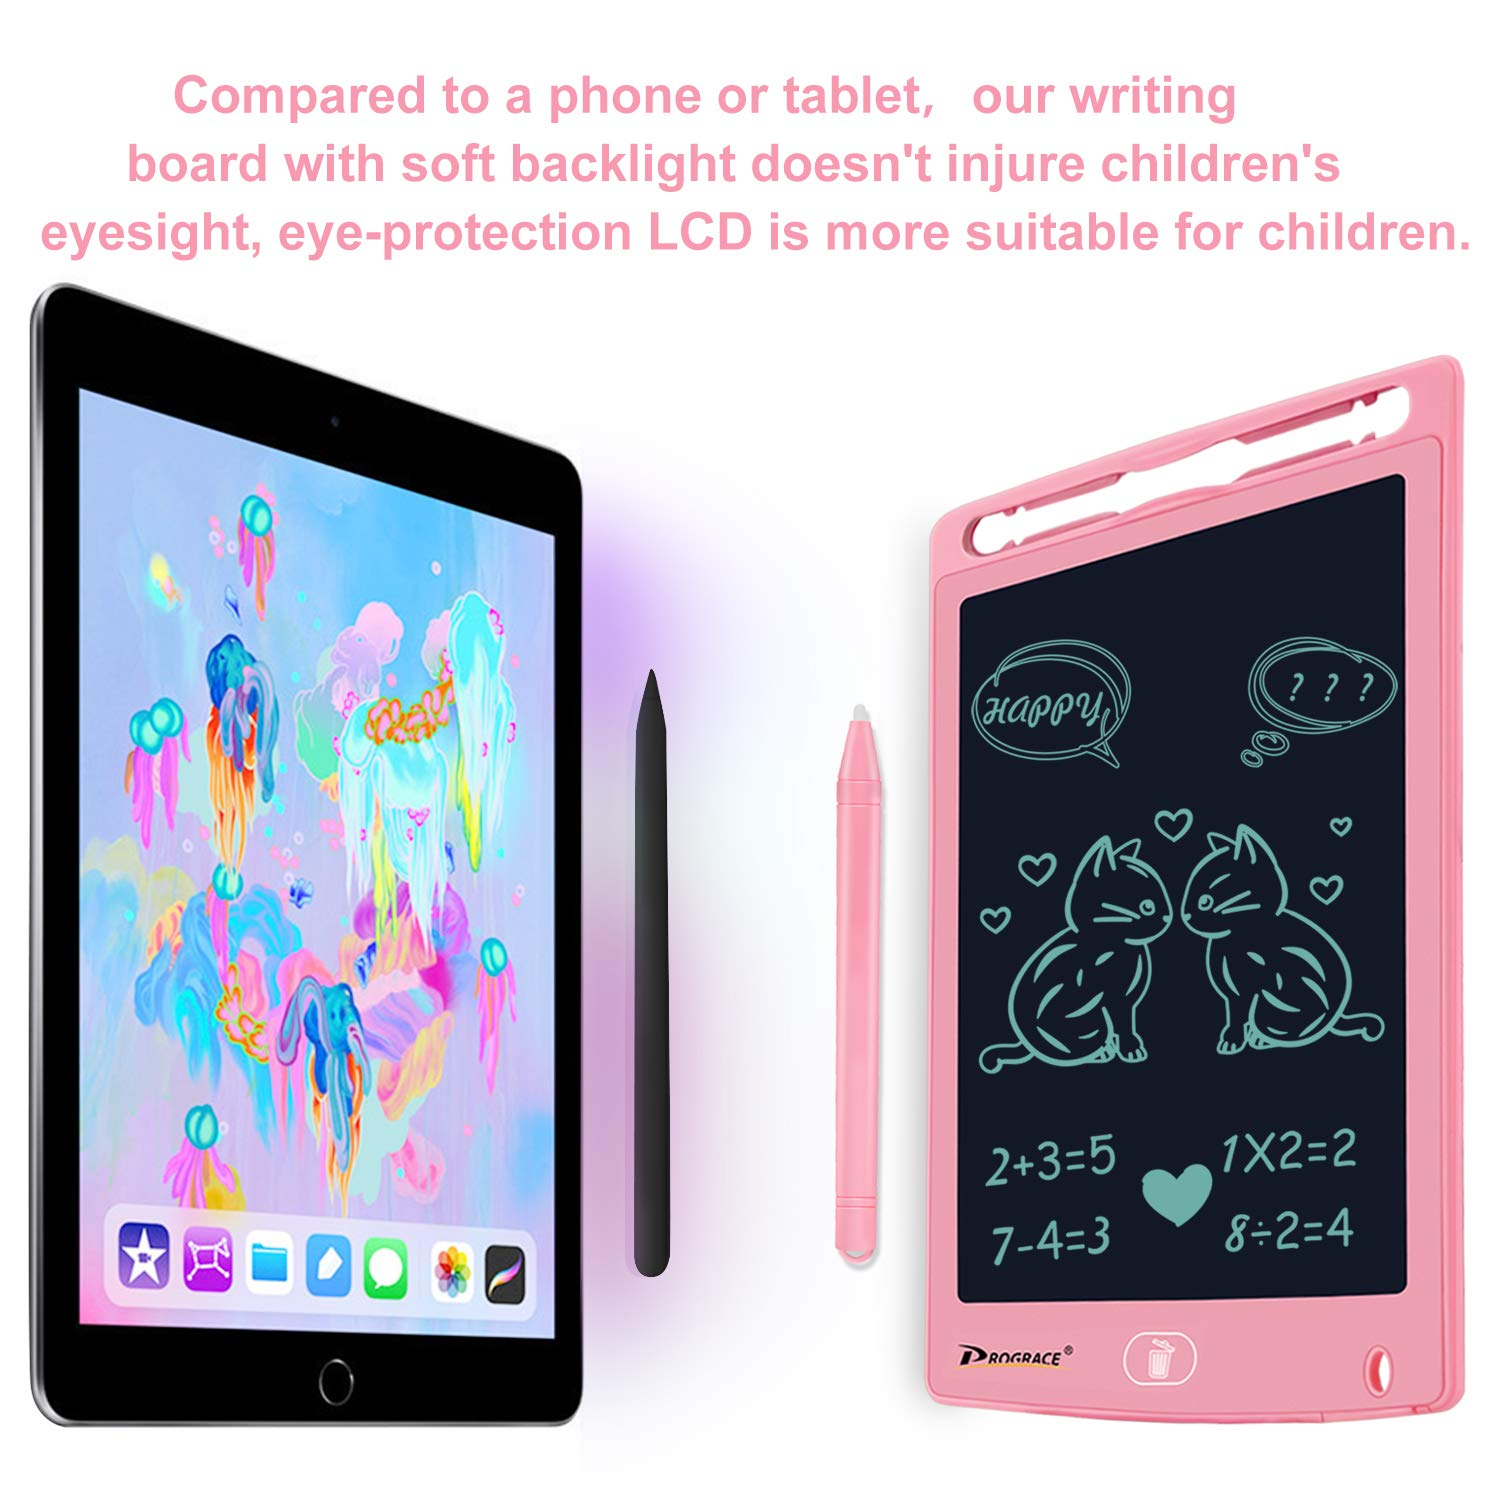 PROGRACE LCD Writing Tablet for Kids Learning Writing Board Magnetic Erase LCD Writing Pad Smart Doodle Drawing Board for Home School Office Portable Electronic Digital Handwriting Pad 8.5'' by PROGRACE (Image #3)